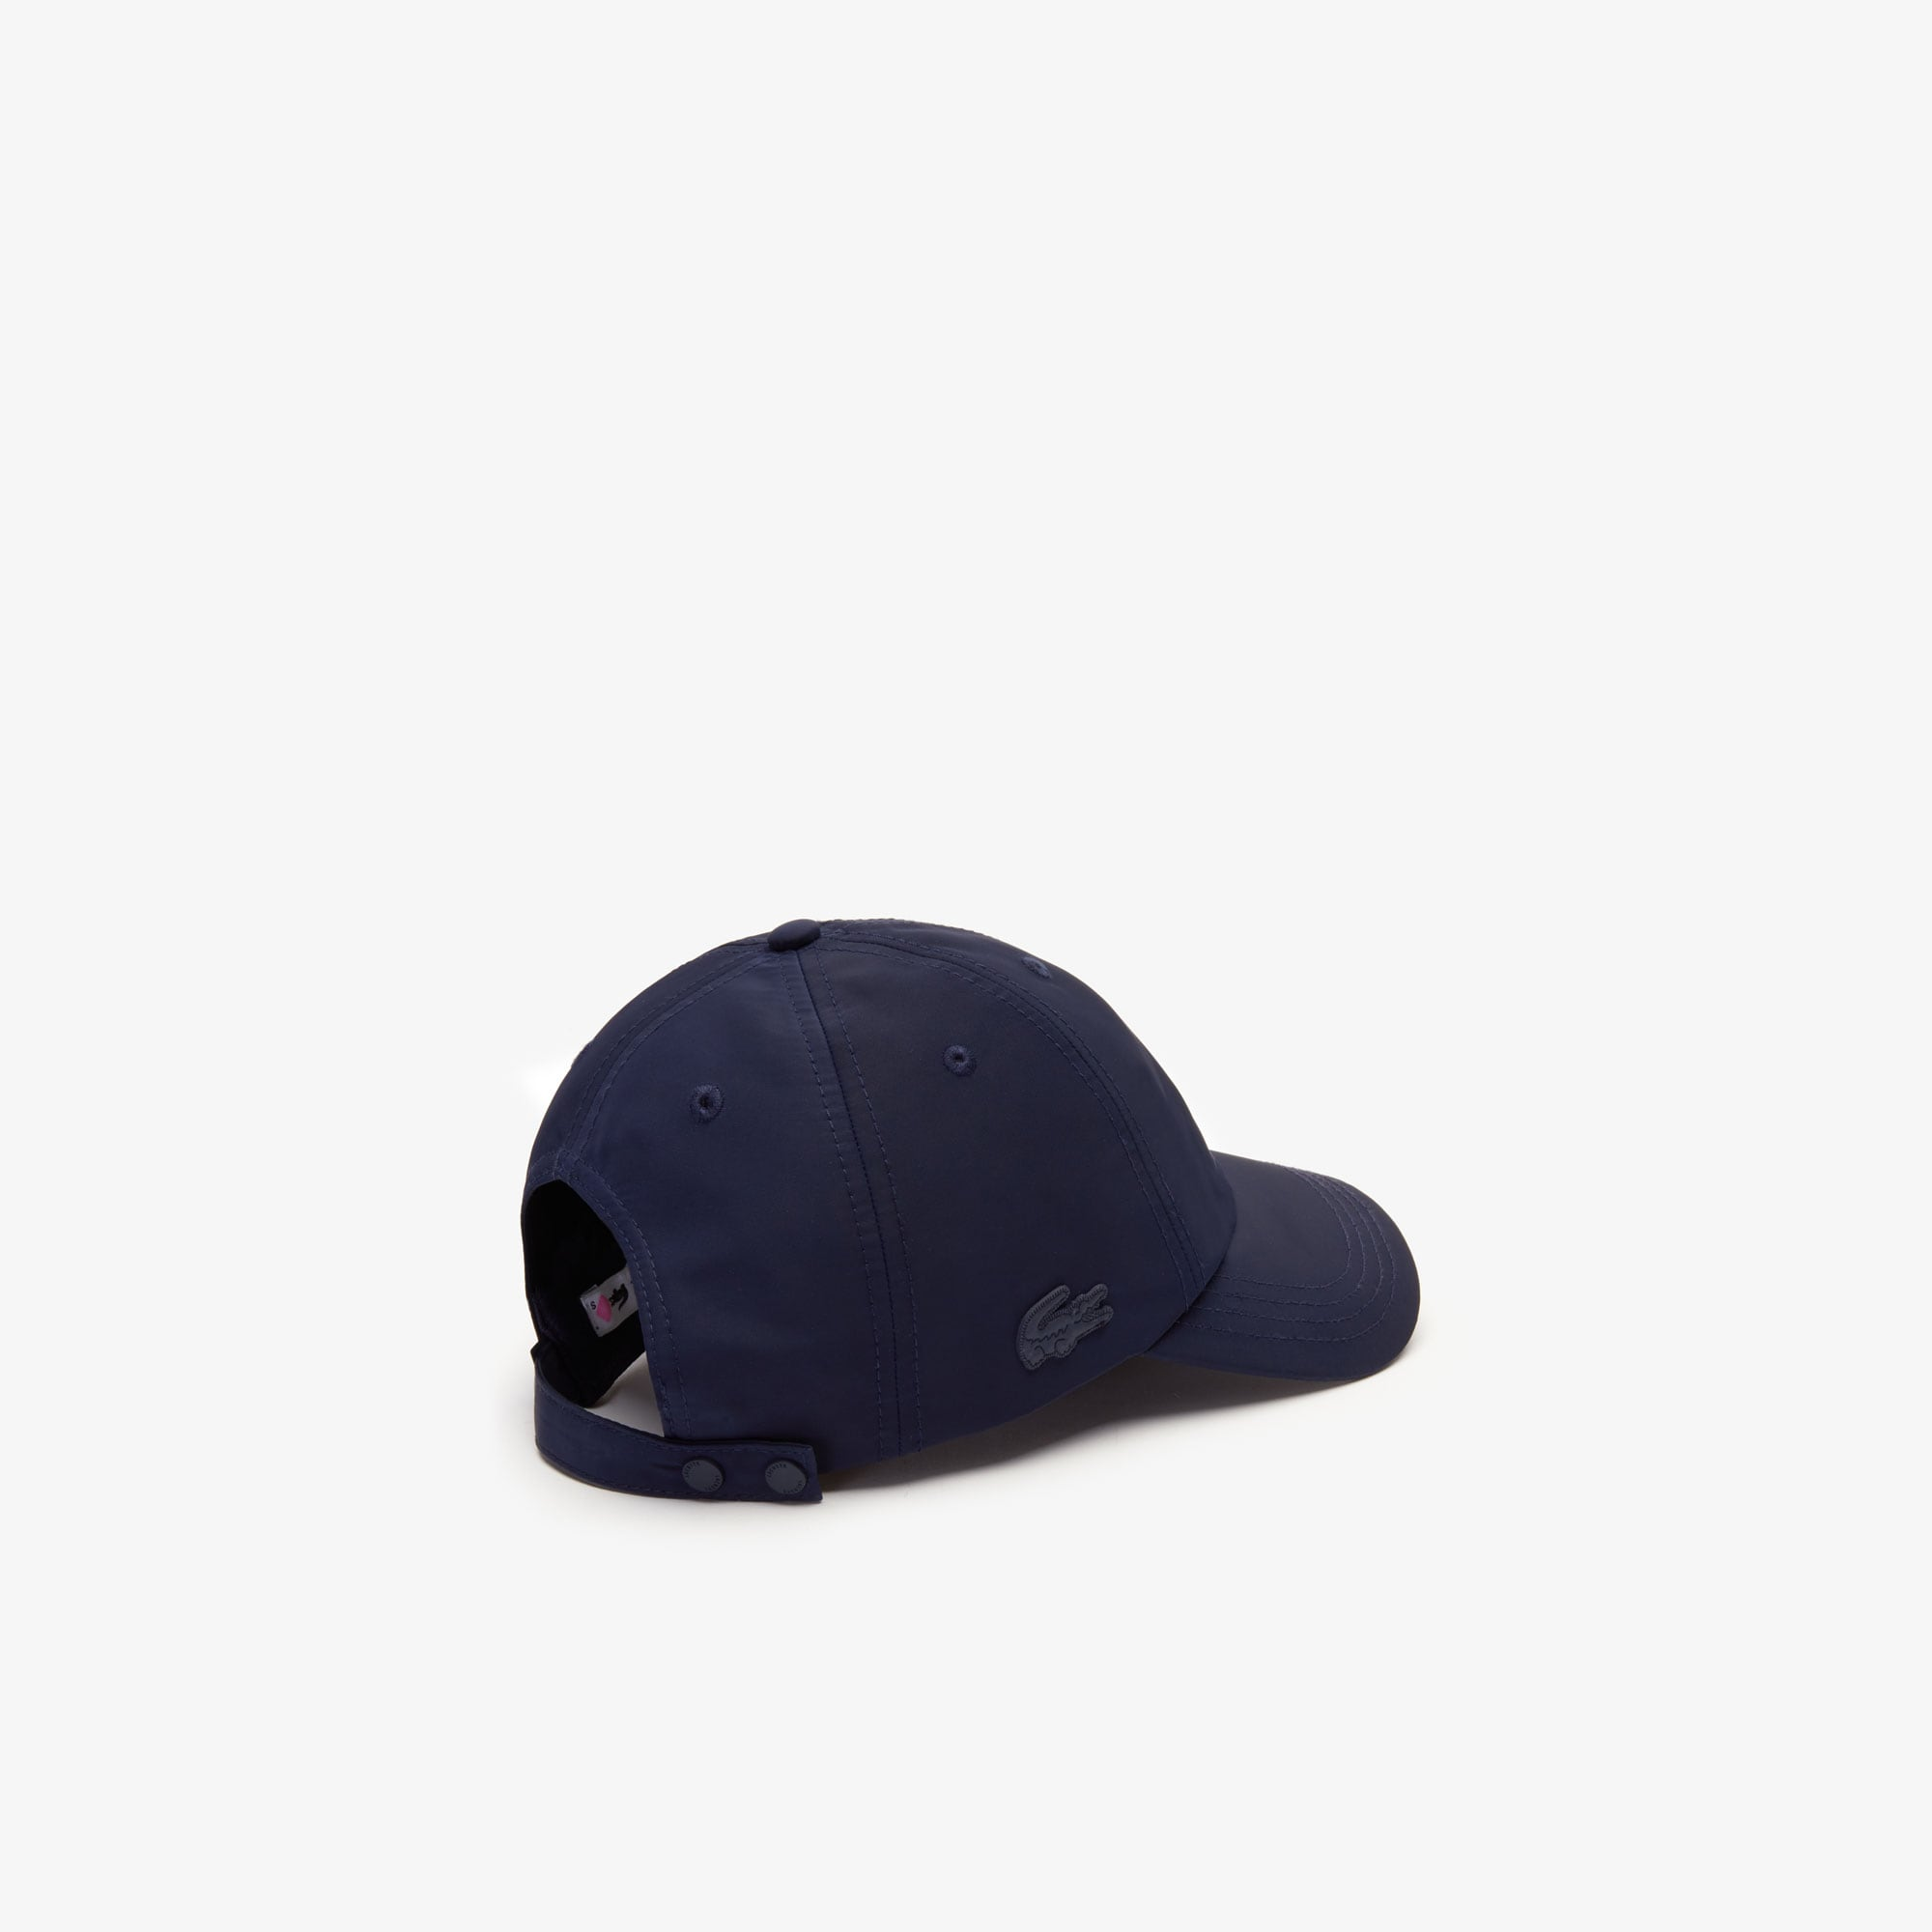 Women's Lightweight Snap-Closure Cap